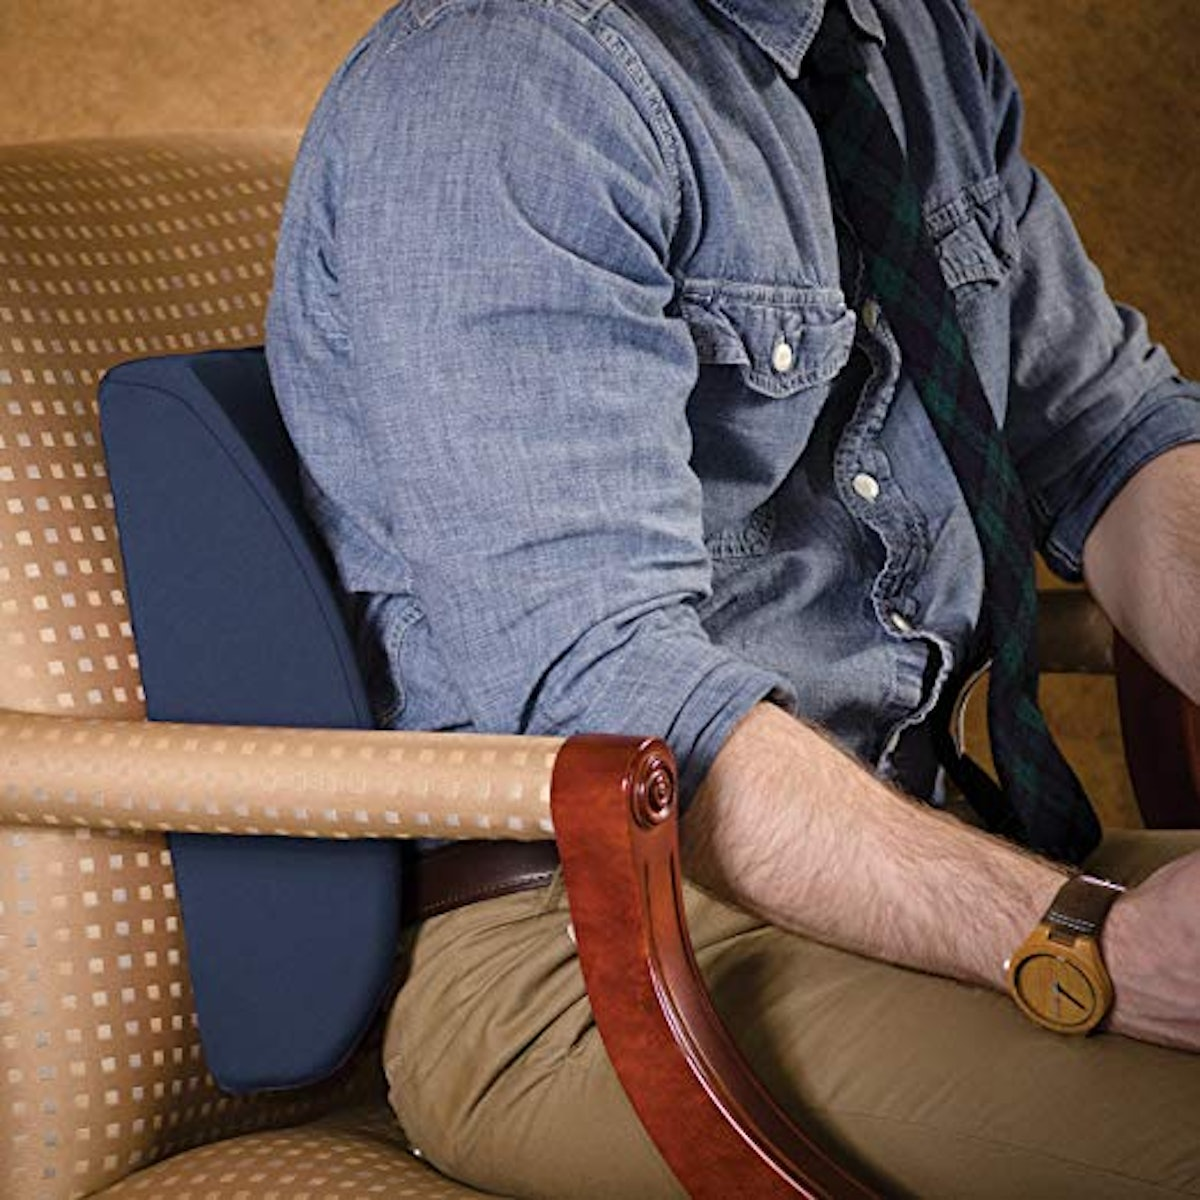 Duro-Med Relax-A-Bac Lumbar Support Pillow